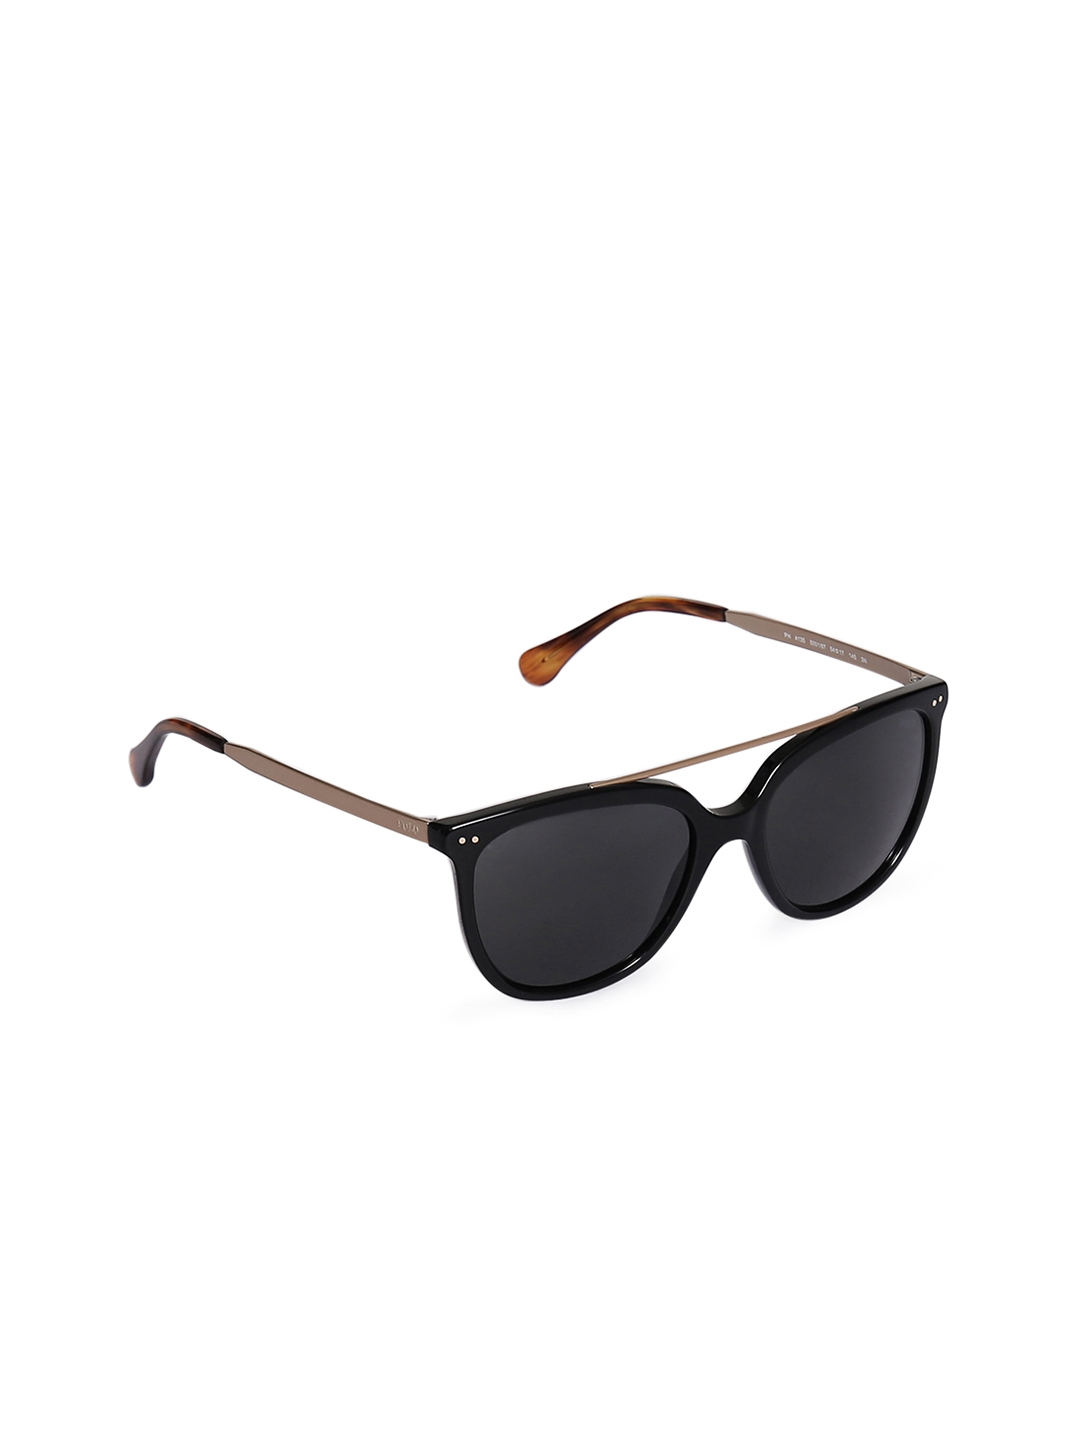 3287392f29 Buy Polo Ralph Lauren Women Other Sunglasses 0PH4135500187 ...